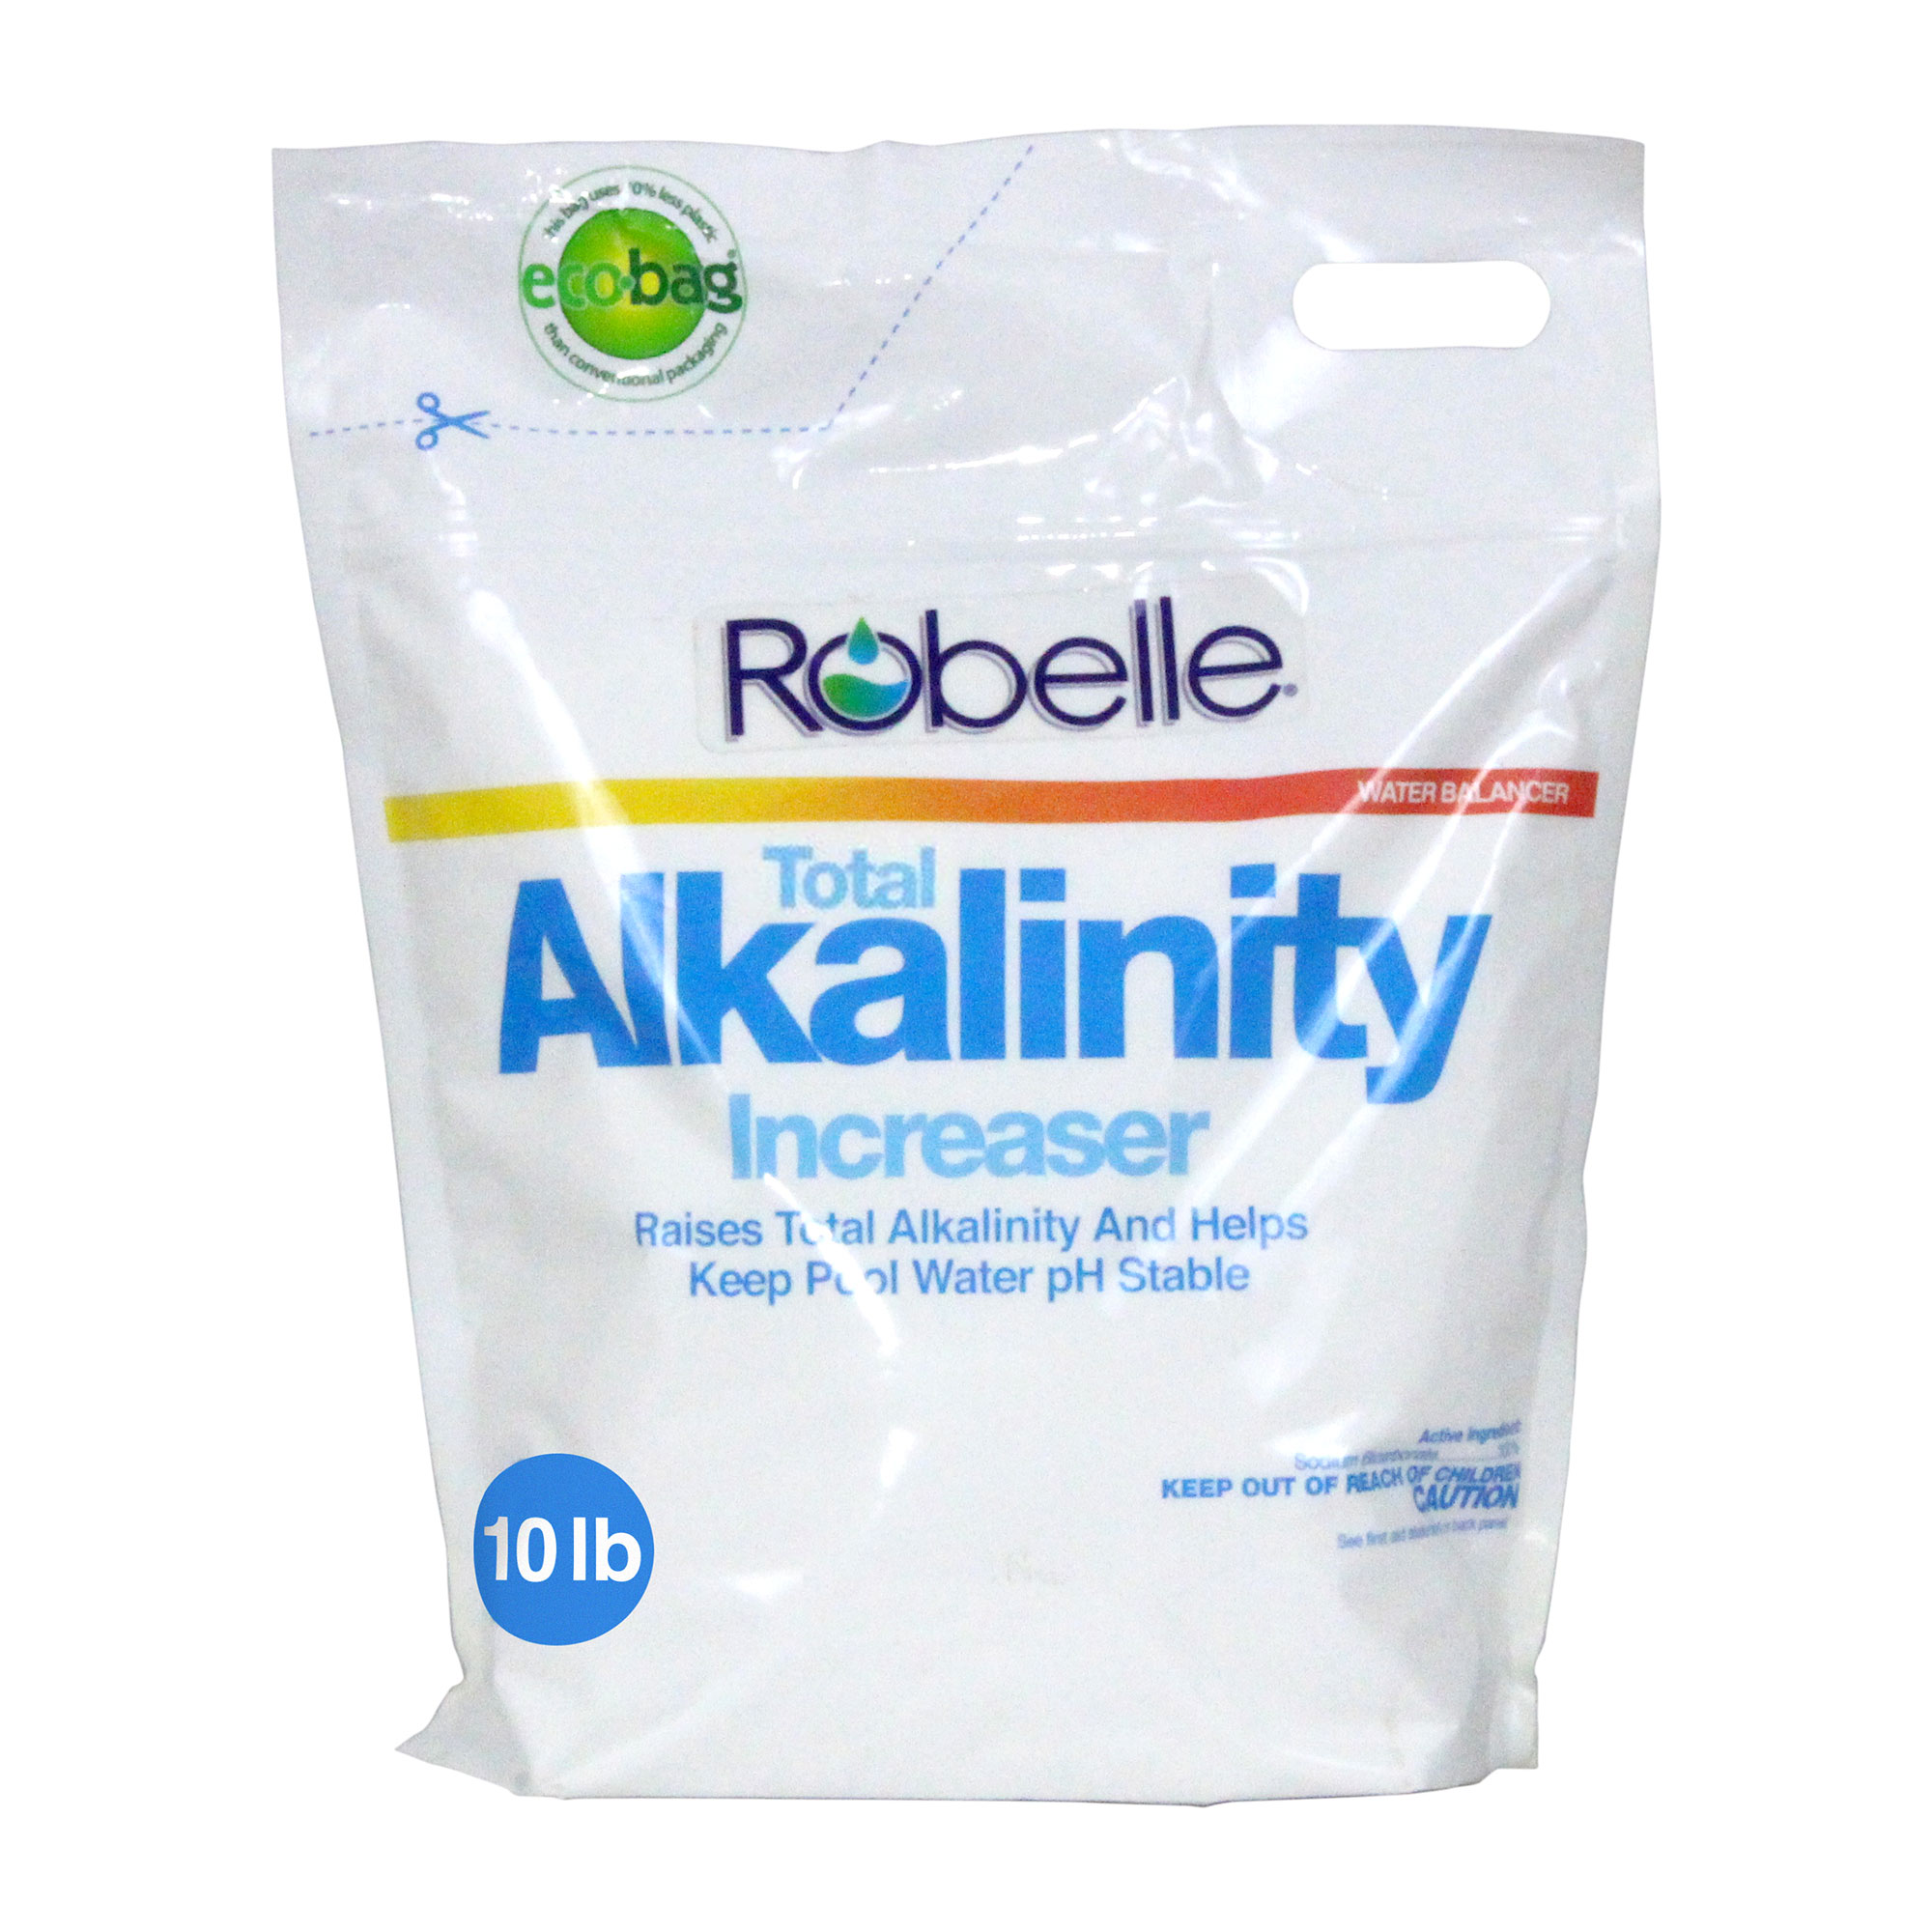 Robelle total alkalinity increaser swimming pool balance chemical 10 lbs ebay Swimming pool high alkalinity